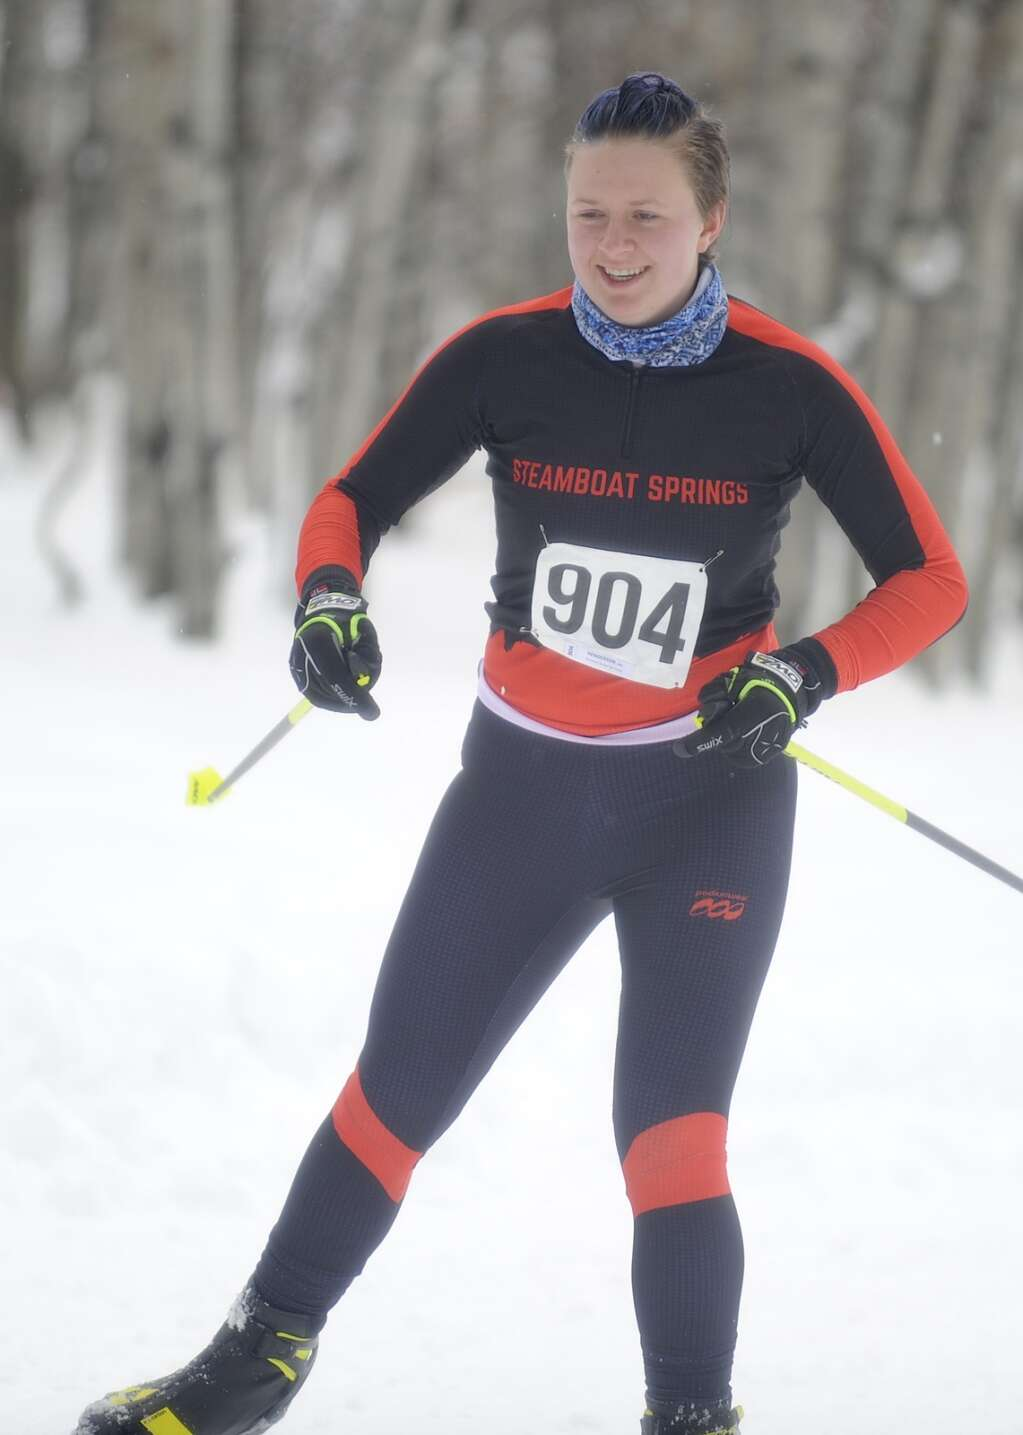 Steamboat Springs Nordic skier Jade Henderson is all smiles at a home race at the Steamboat Ski Touring Center on Friday afternoon. (Photo by Shelby Reardon)